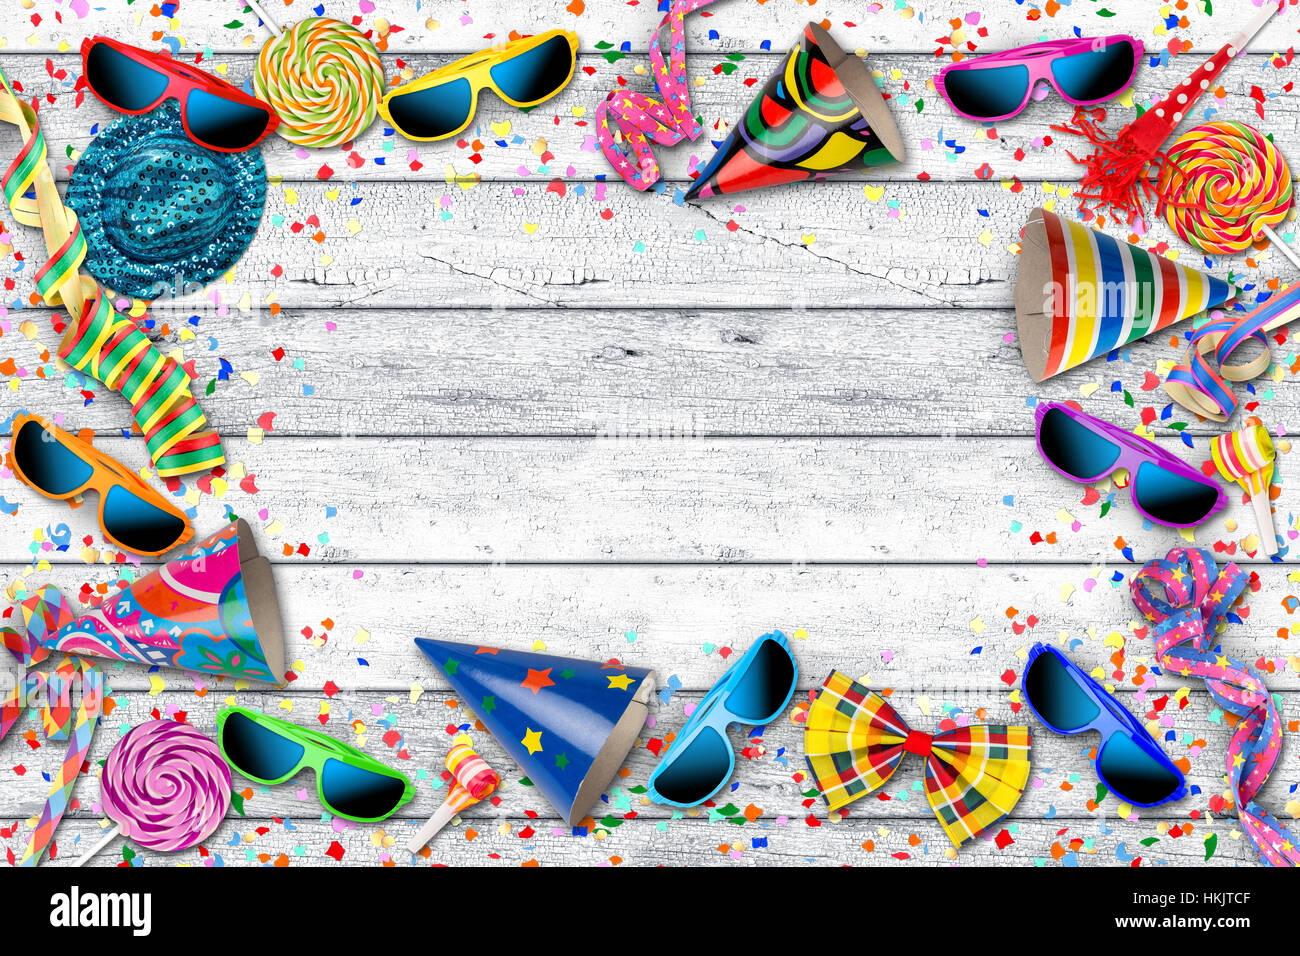 party carnival birthday celebration background with colorful